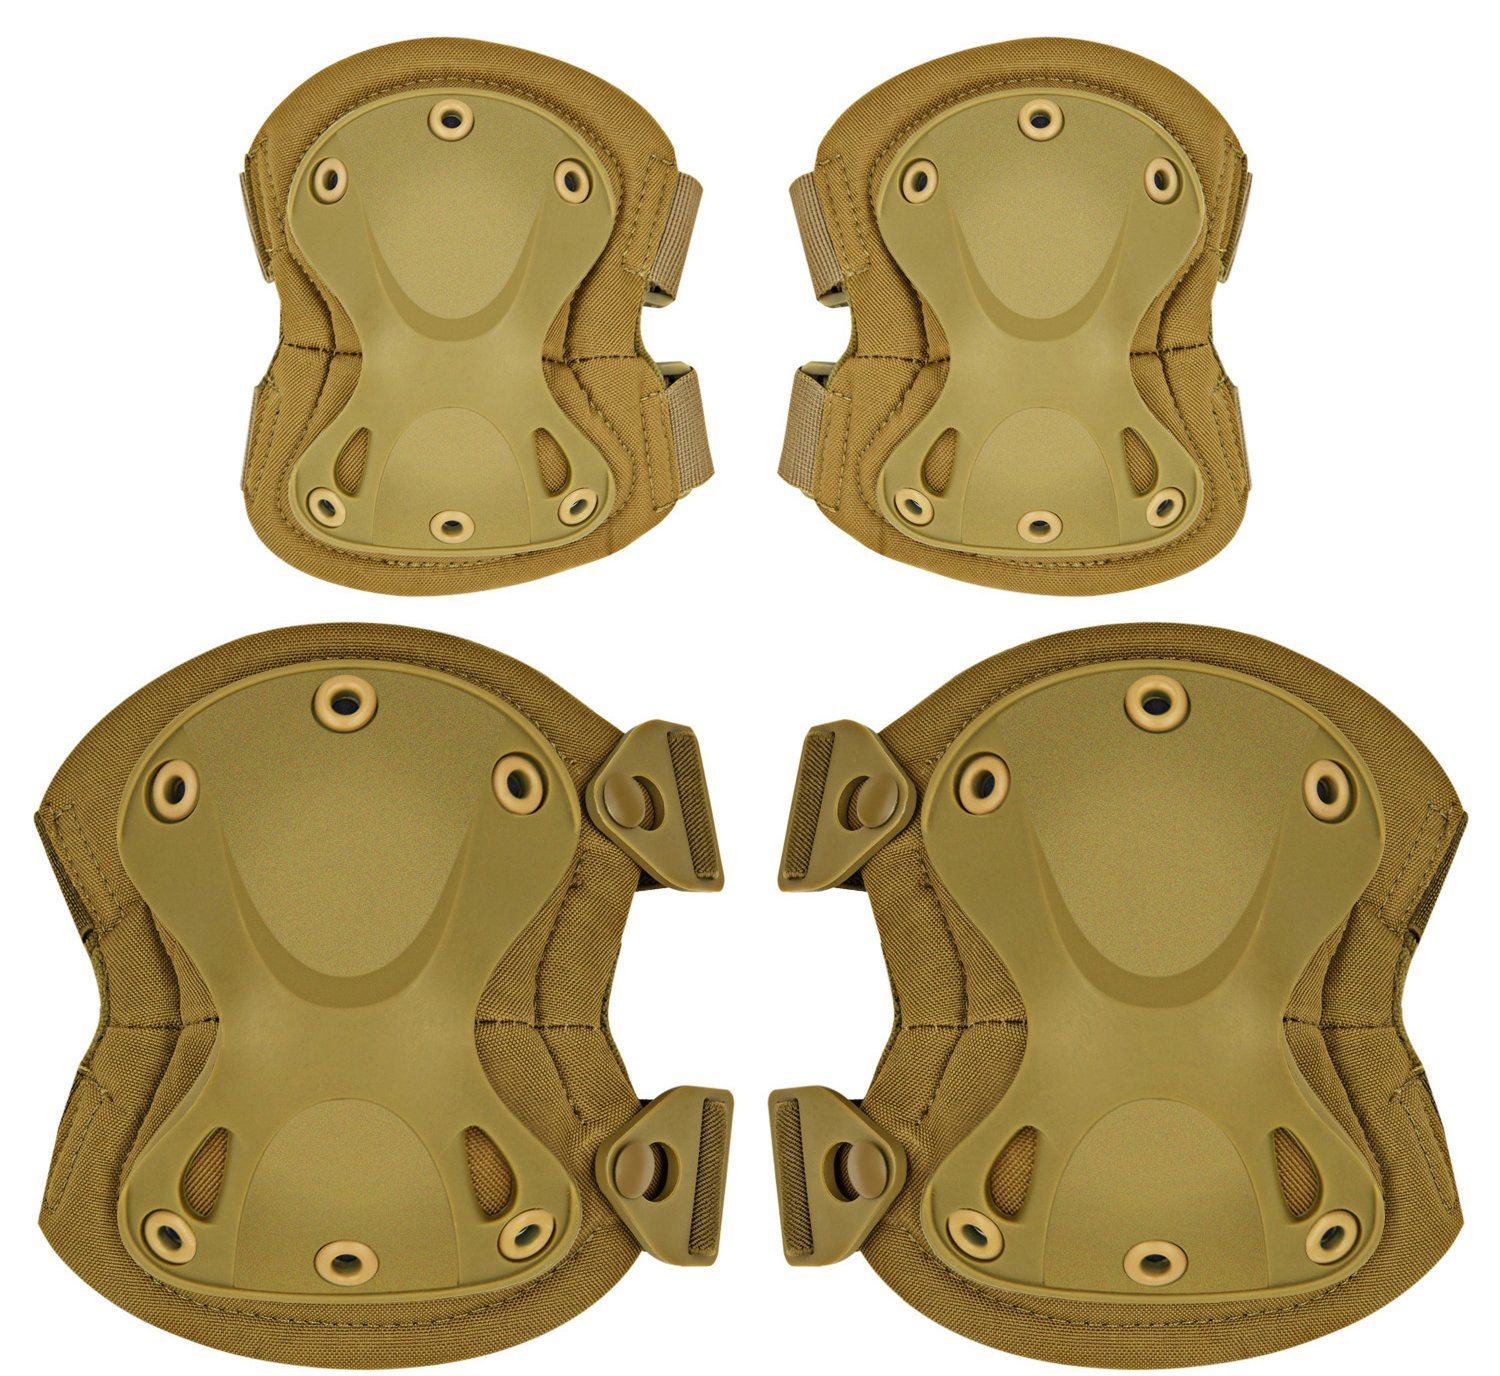 ArcEnCiel Tactical Combat Knee & Elbow Protective Pads Guard Set (Tan)